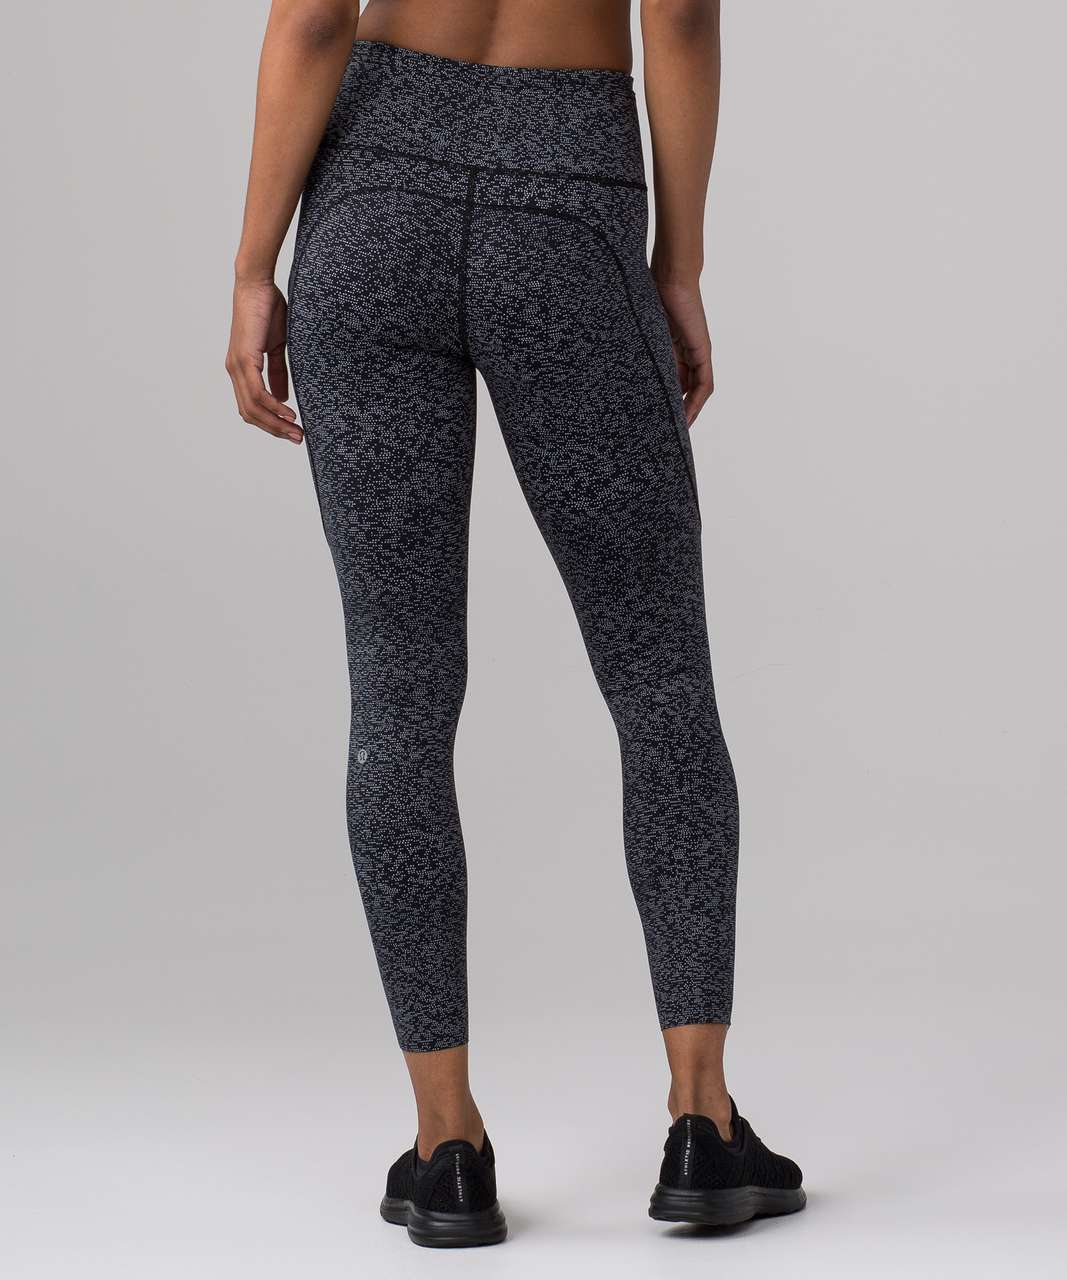 "Lululemon Fast & Free 7/8 Tight II *Nulux 25"" - Soundwave Alpine White Black"